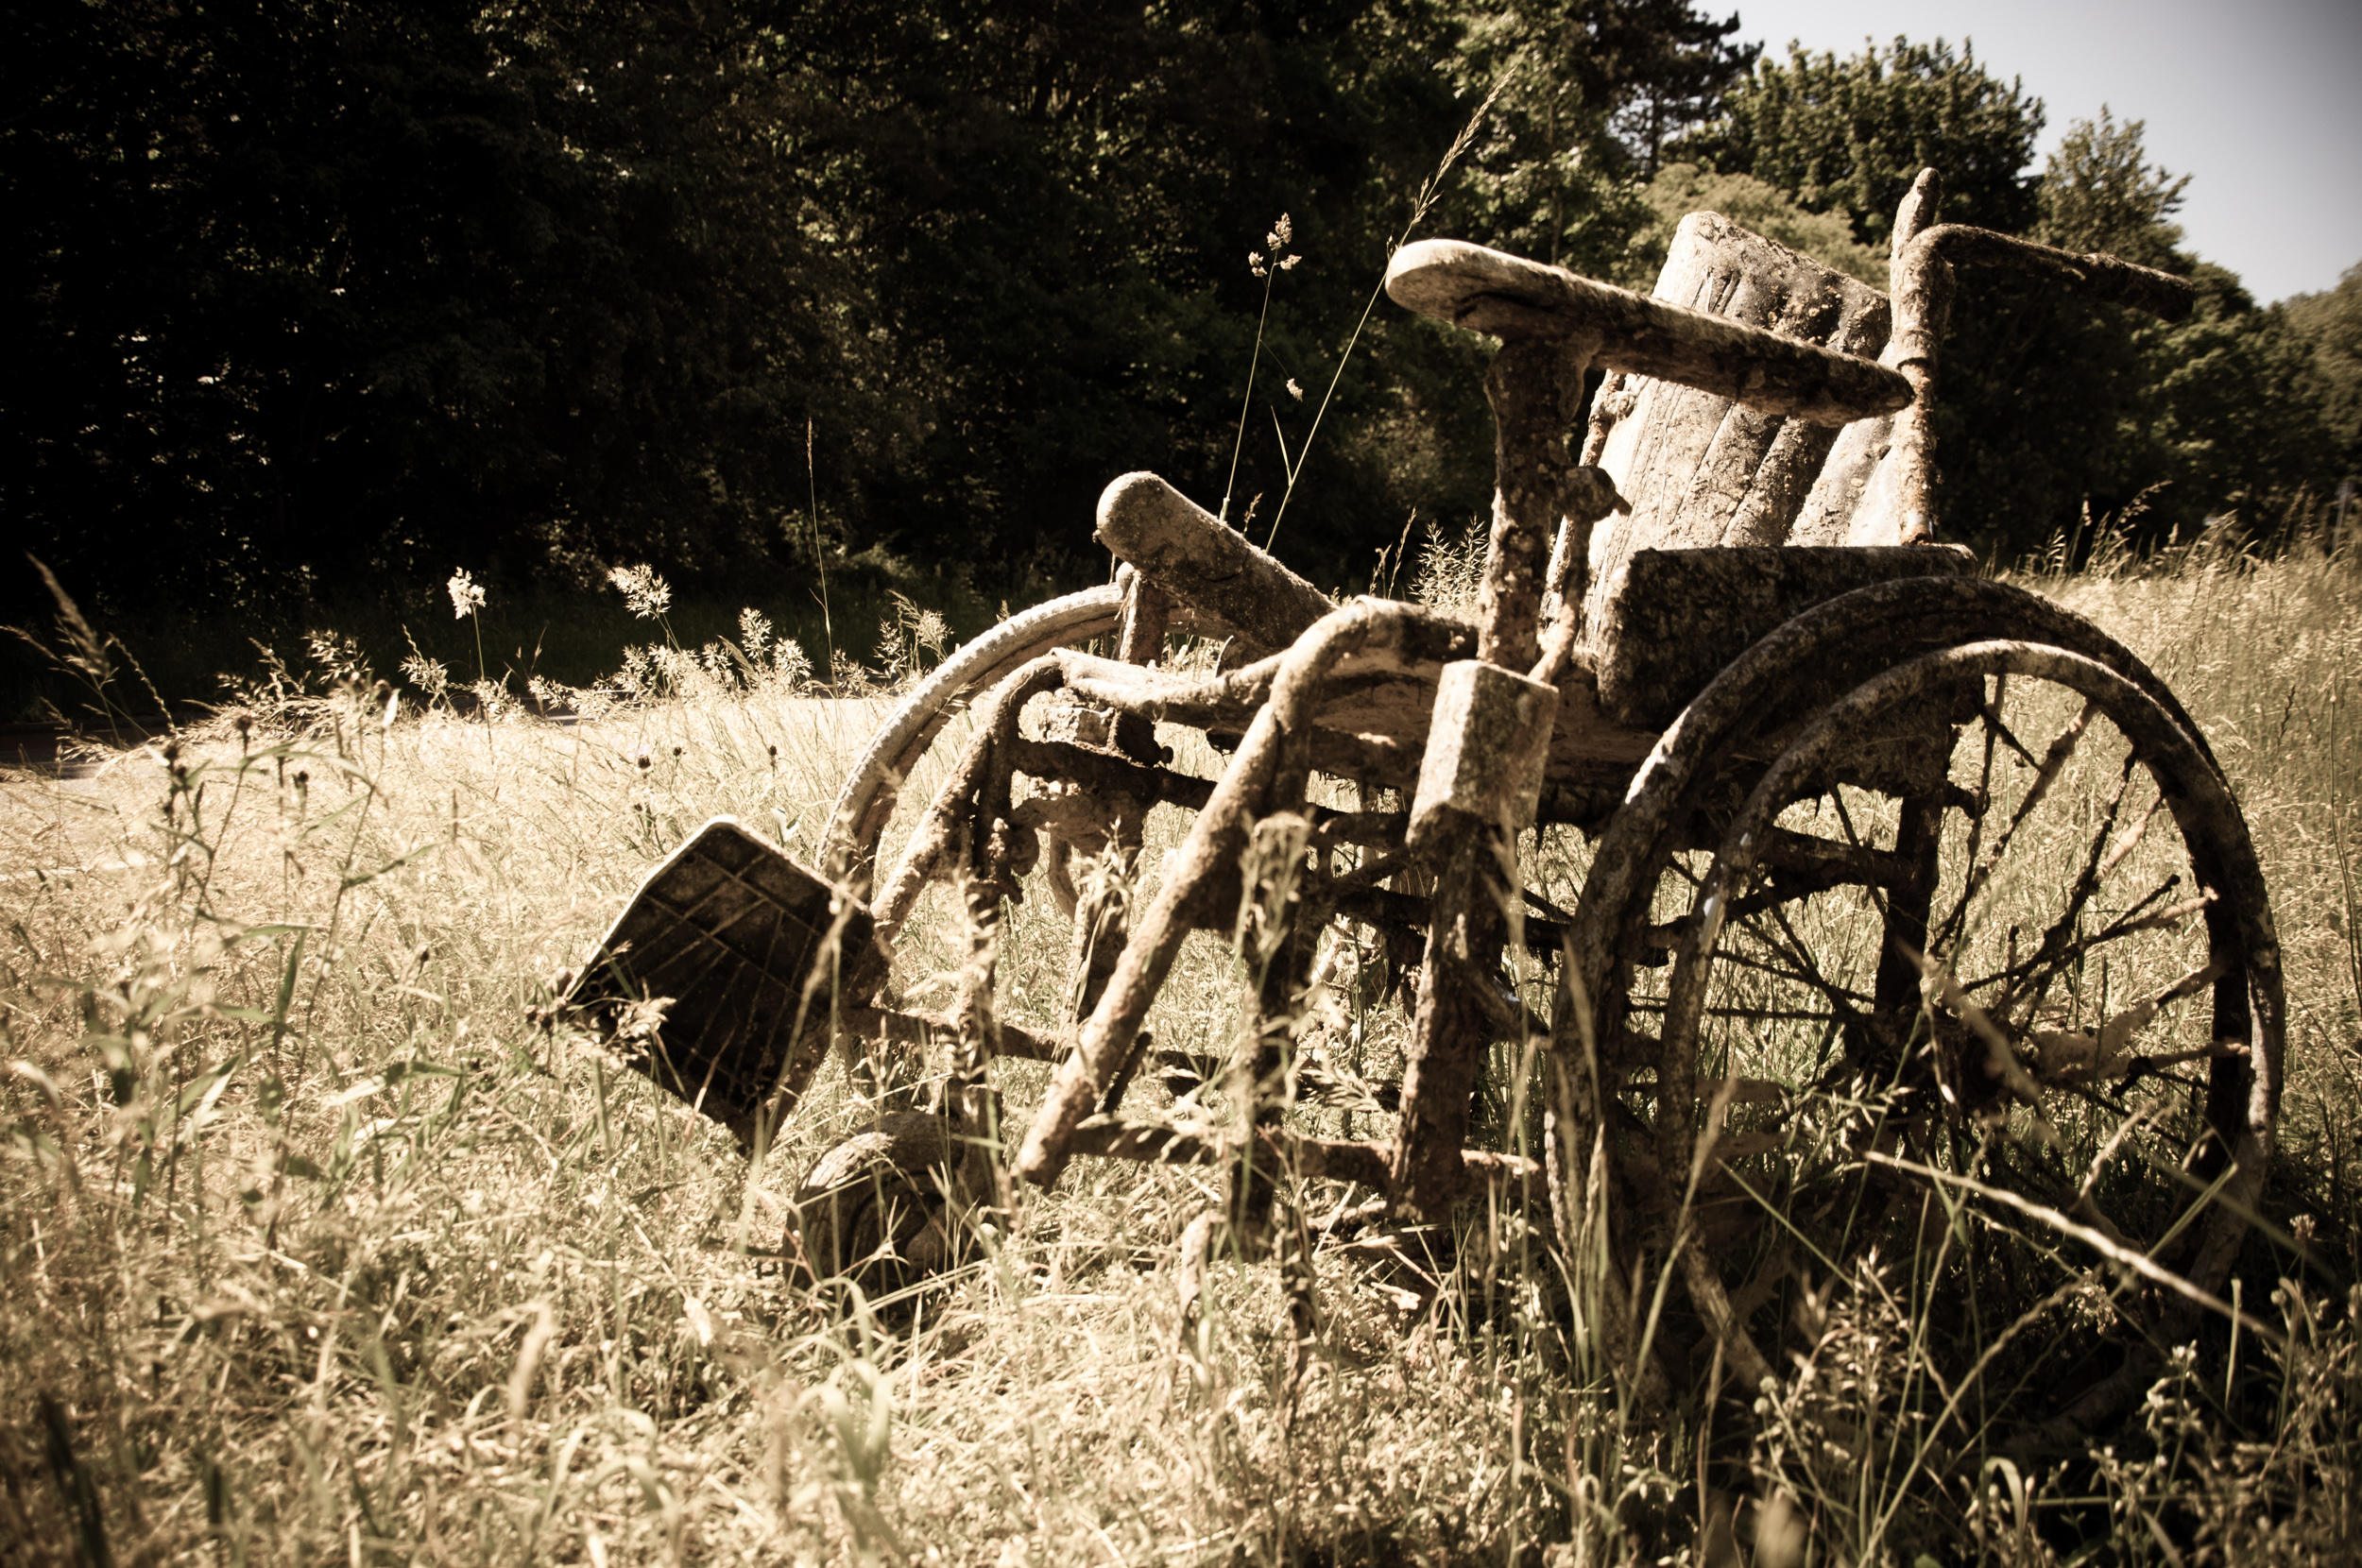 Abandoned Wheelchair, Abandoned, Rust, Old, Outside, HQ Photo